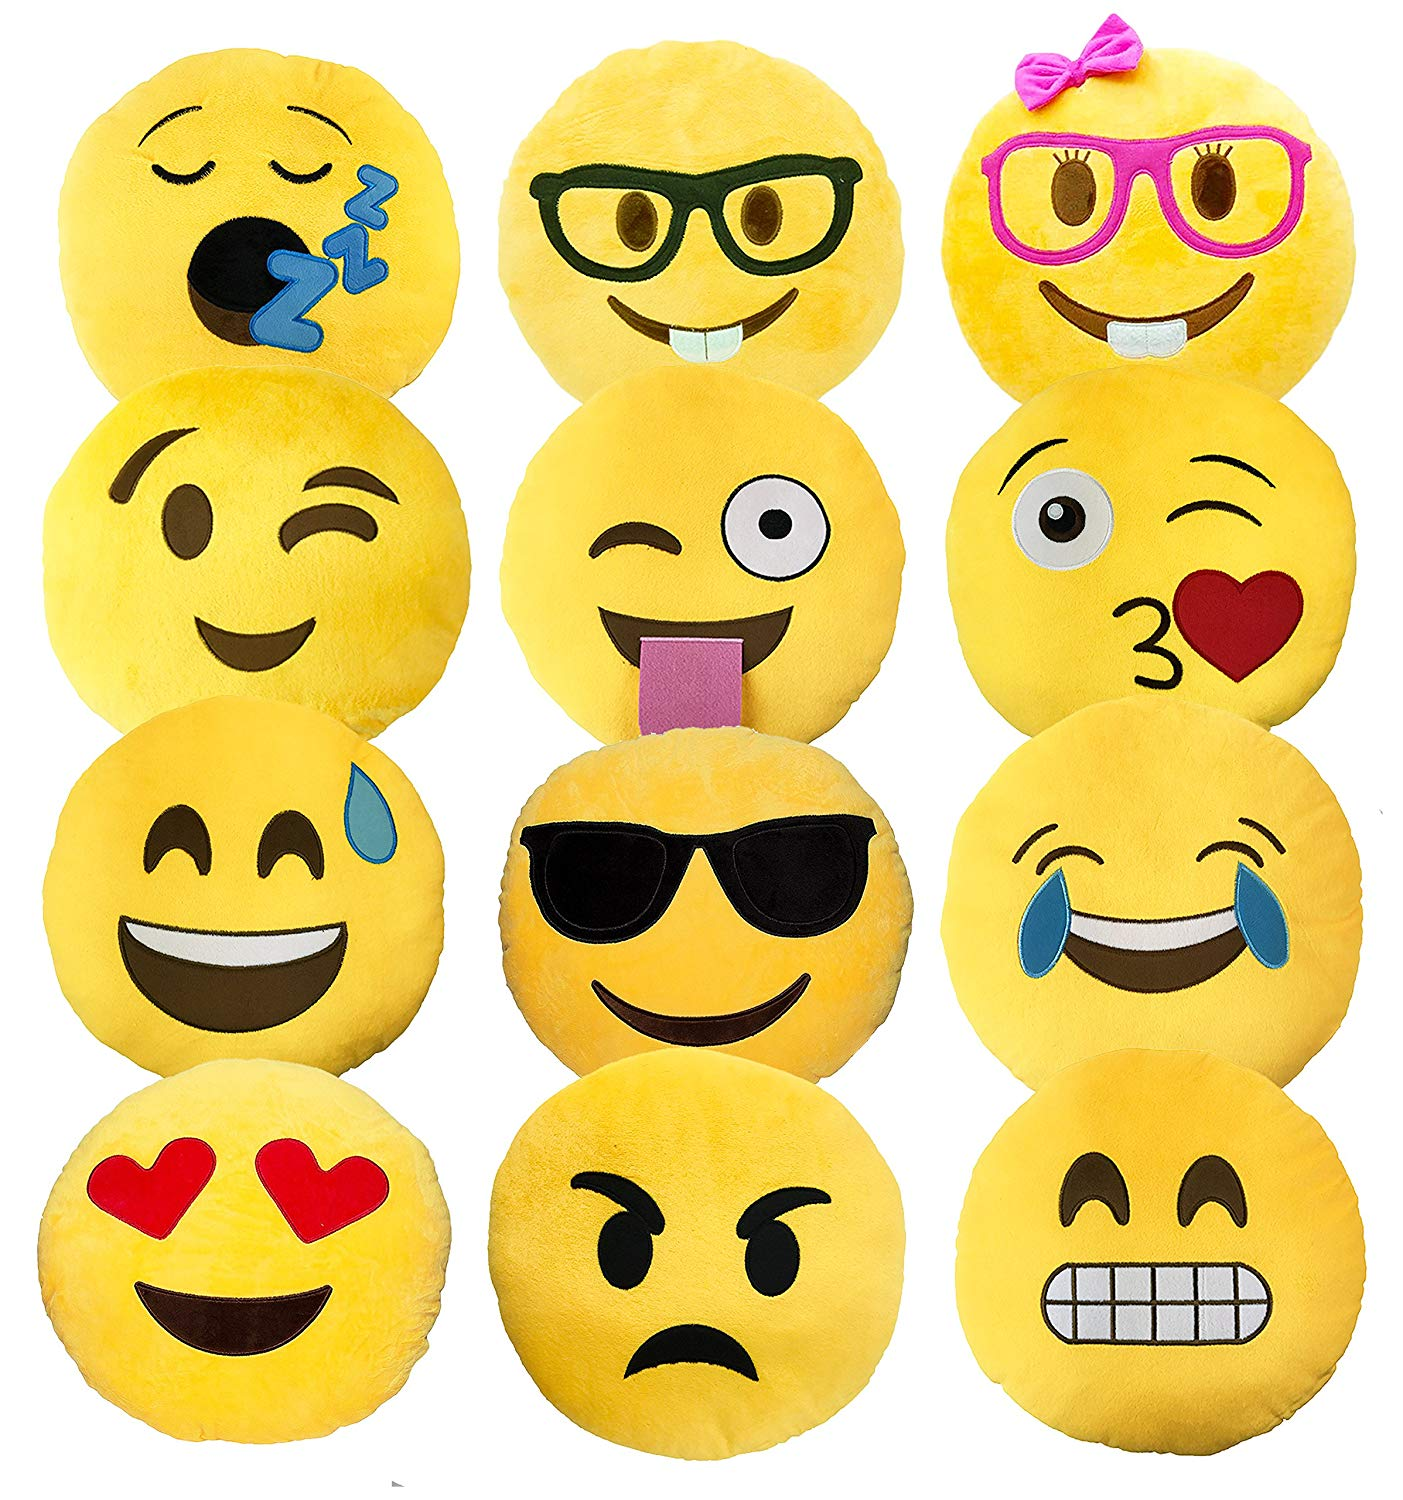 emoji emotion pillows